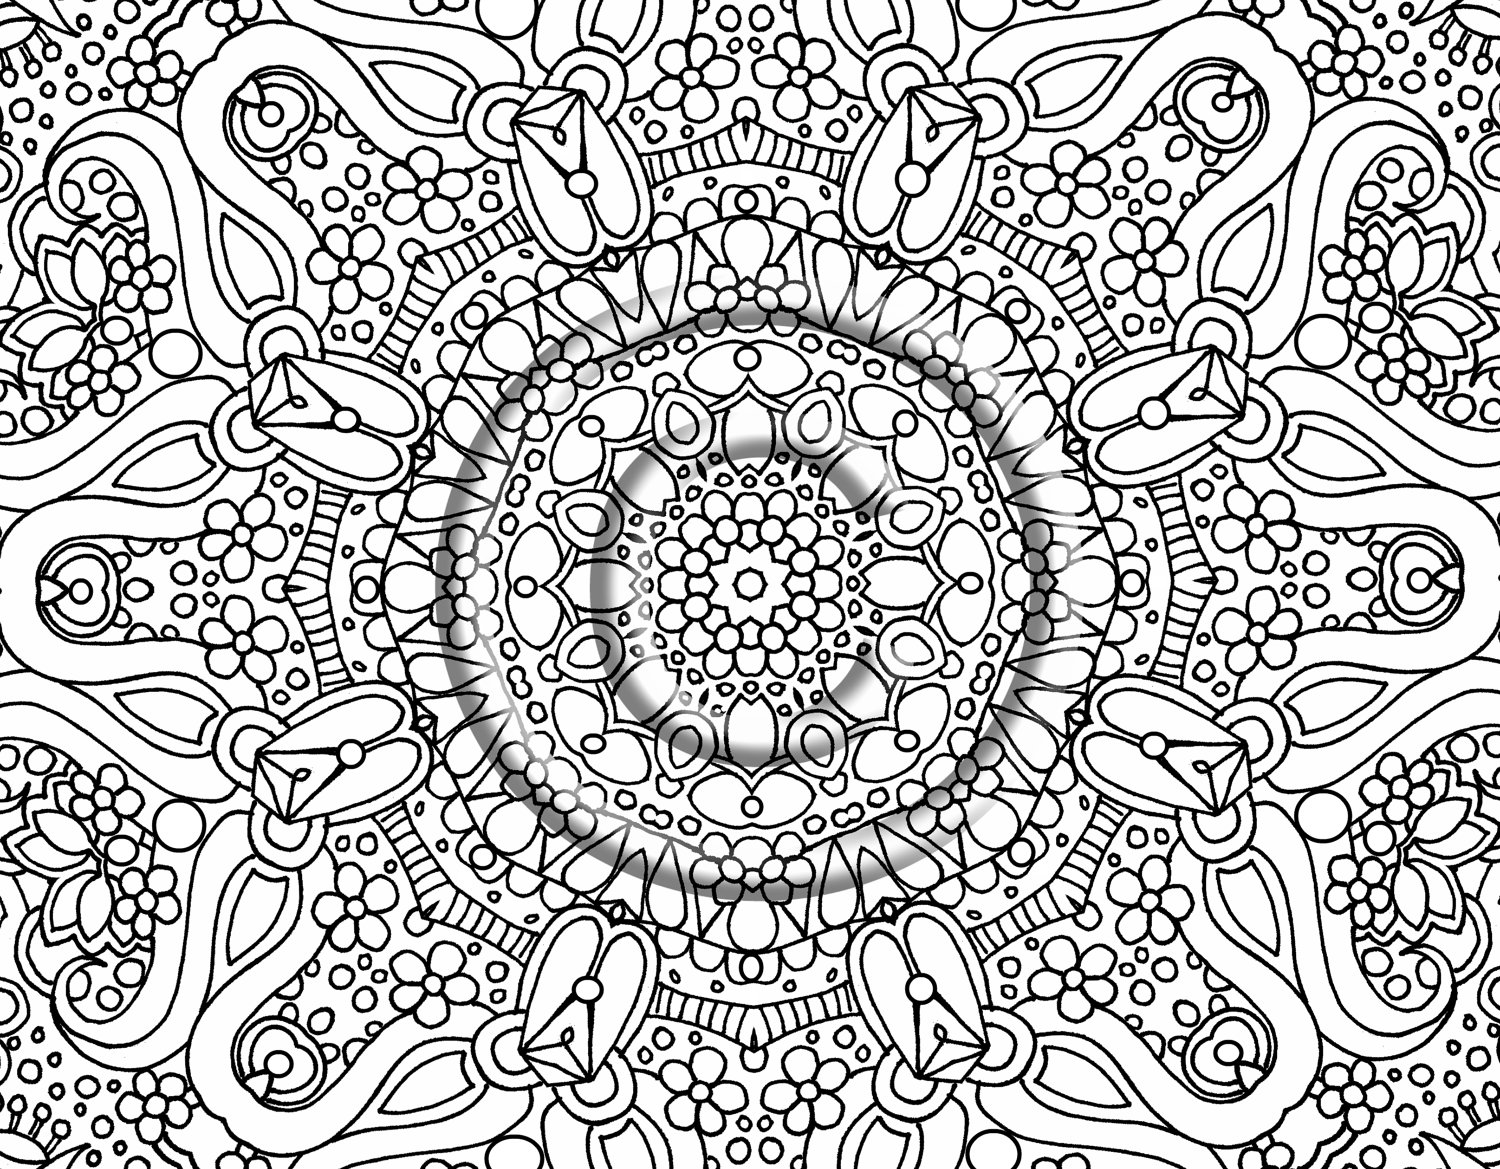 Best Abstract Coloring Books